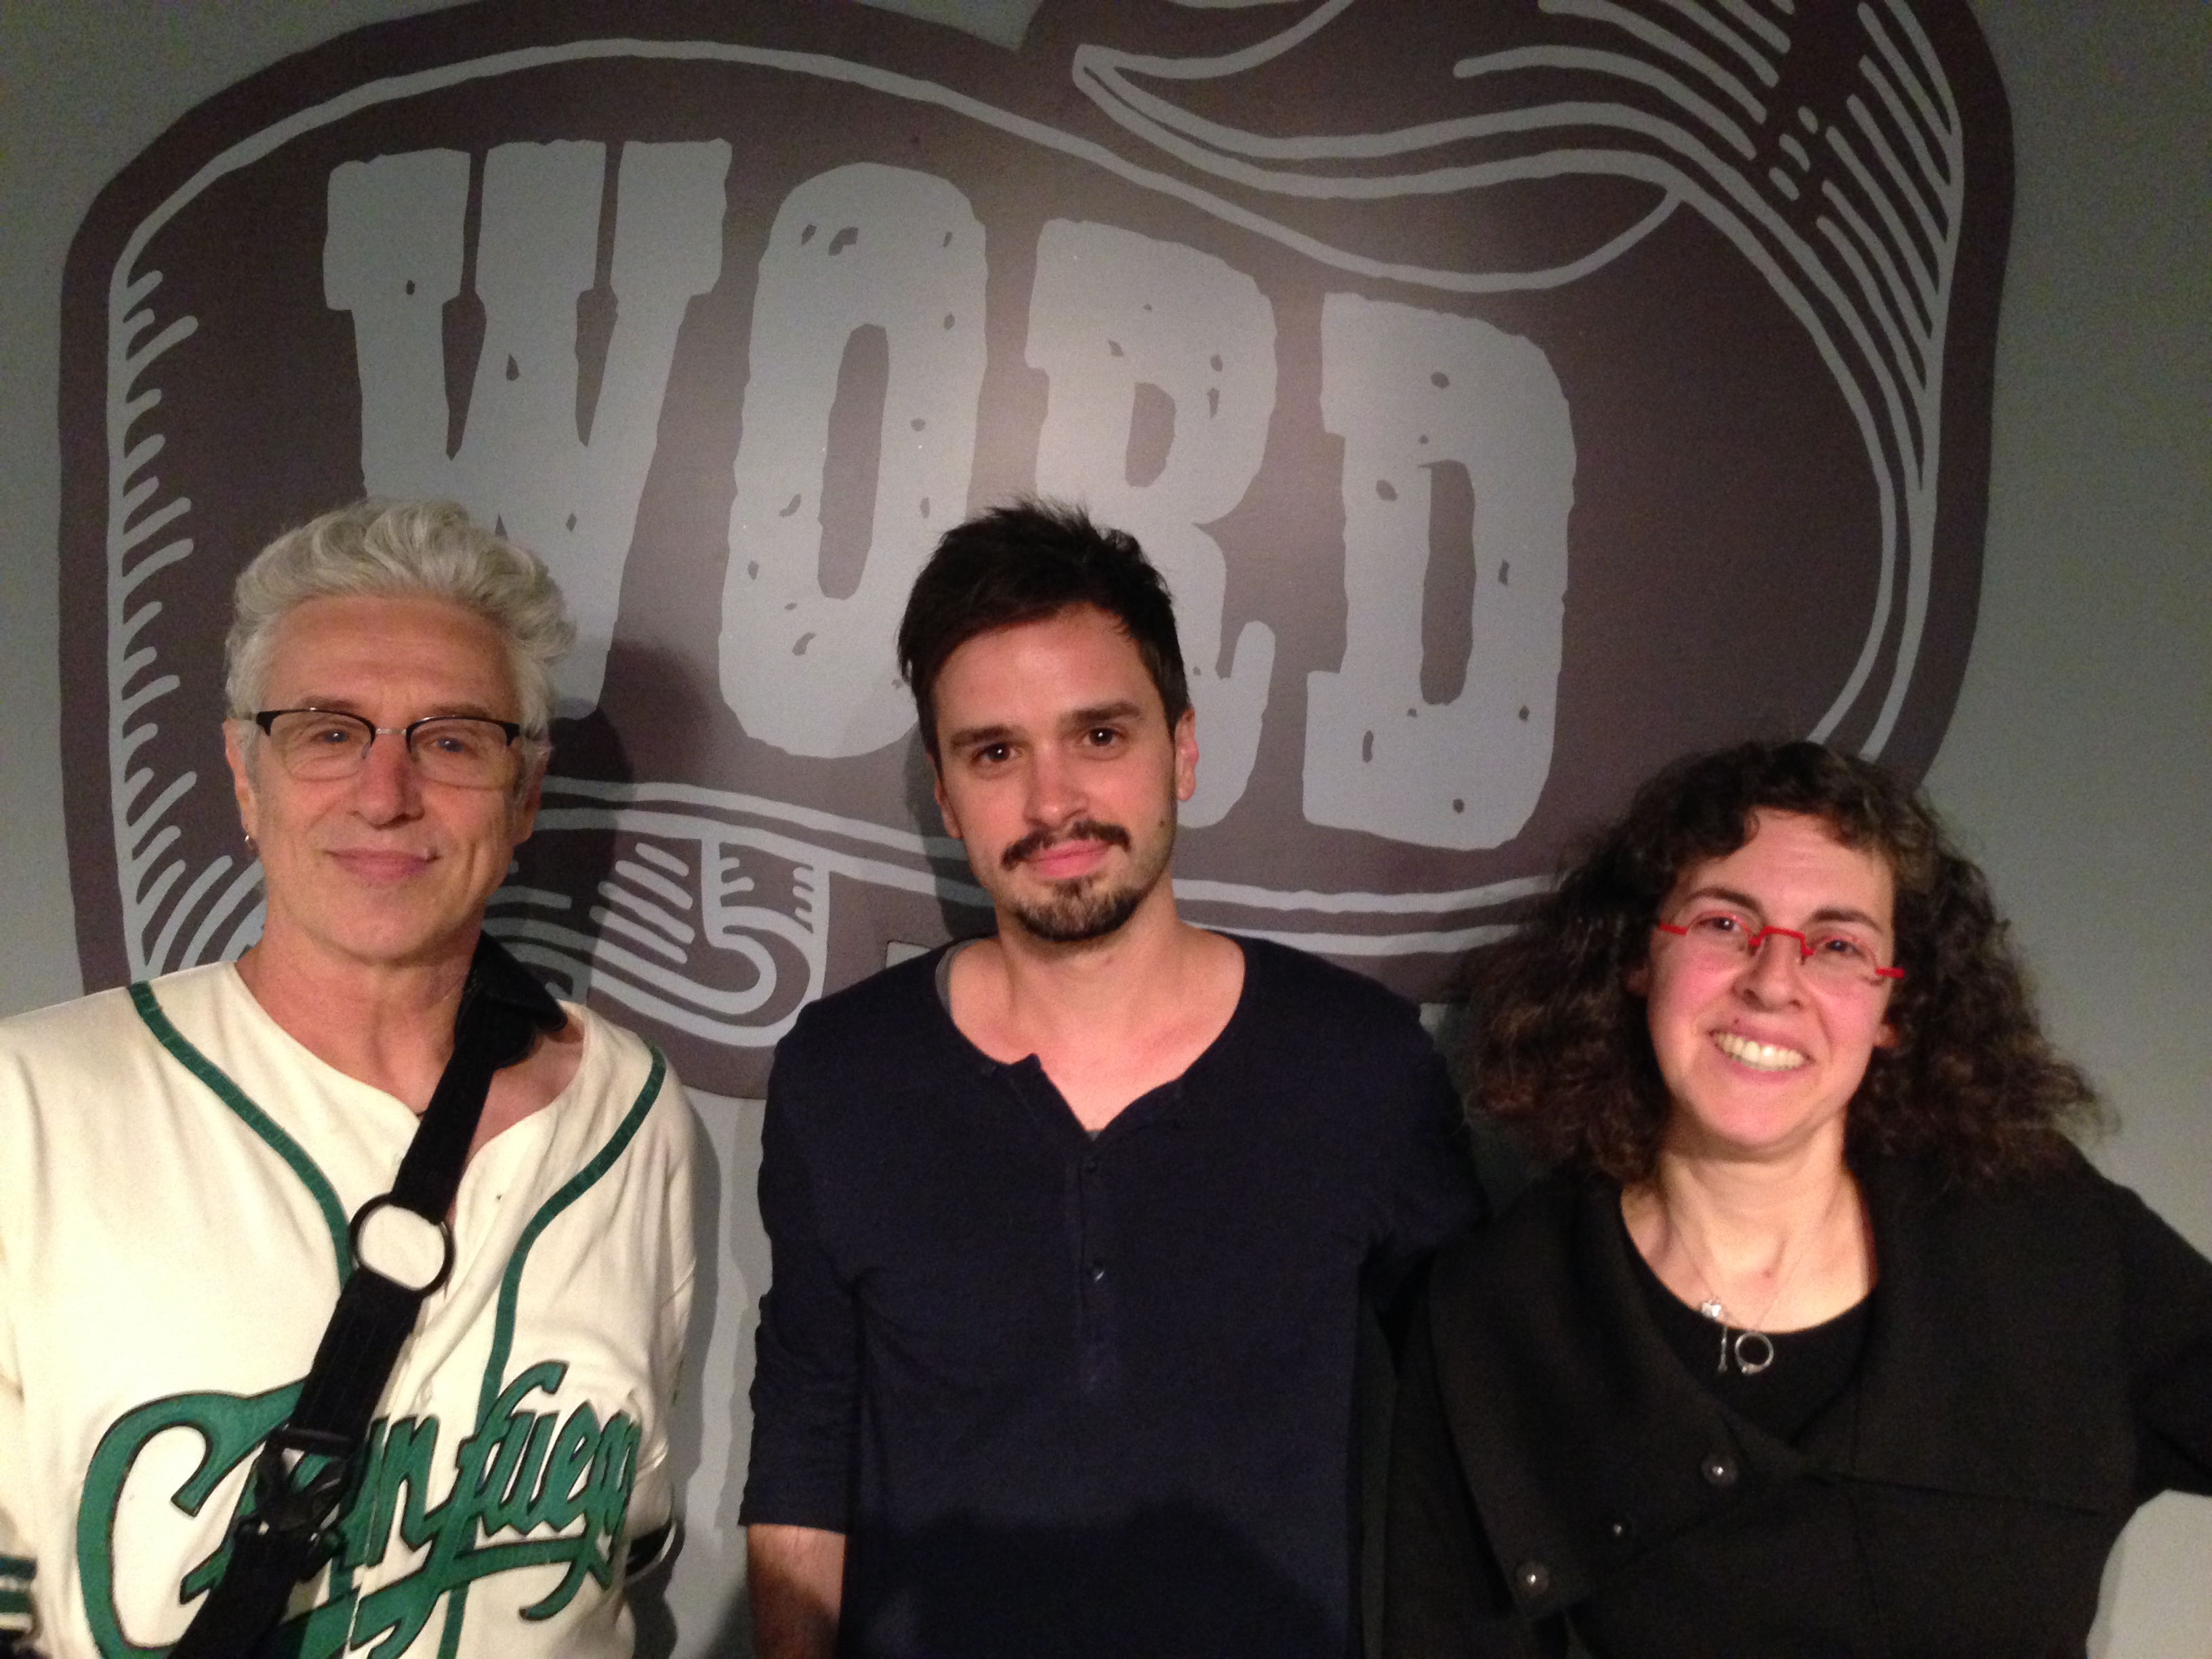 Pitchapalooza winner Val Emmich, David Henry Sterry, and Arielle Eckstut at Word Bookstore